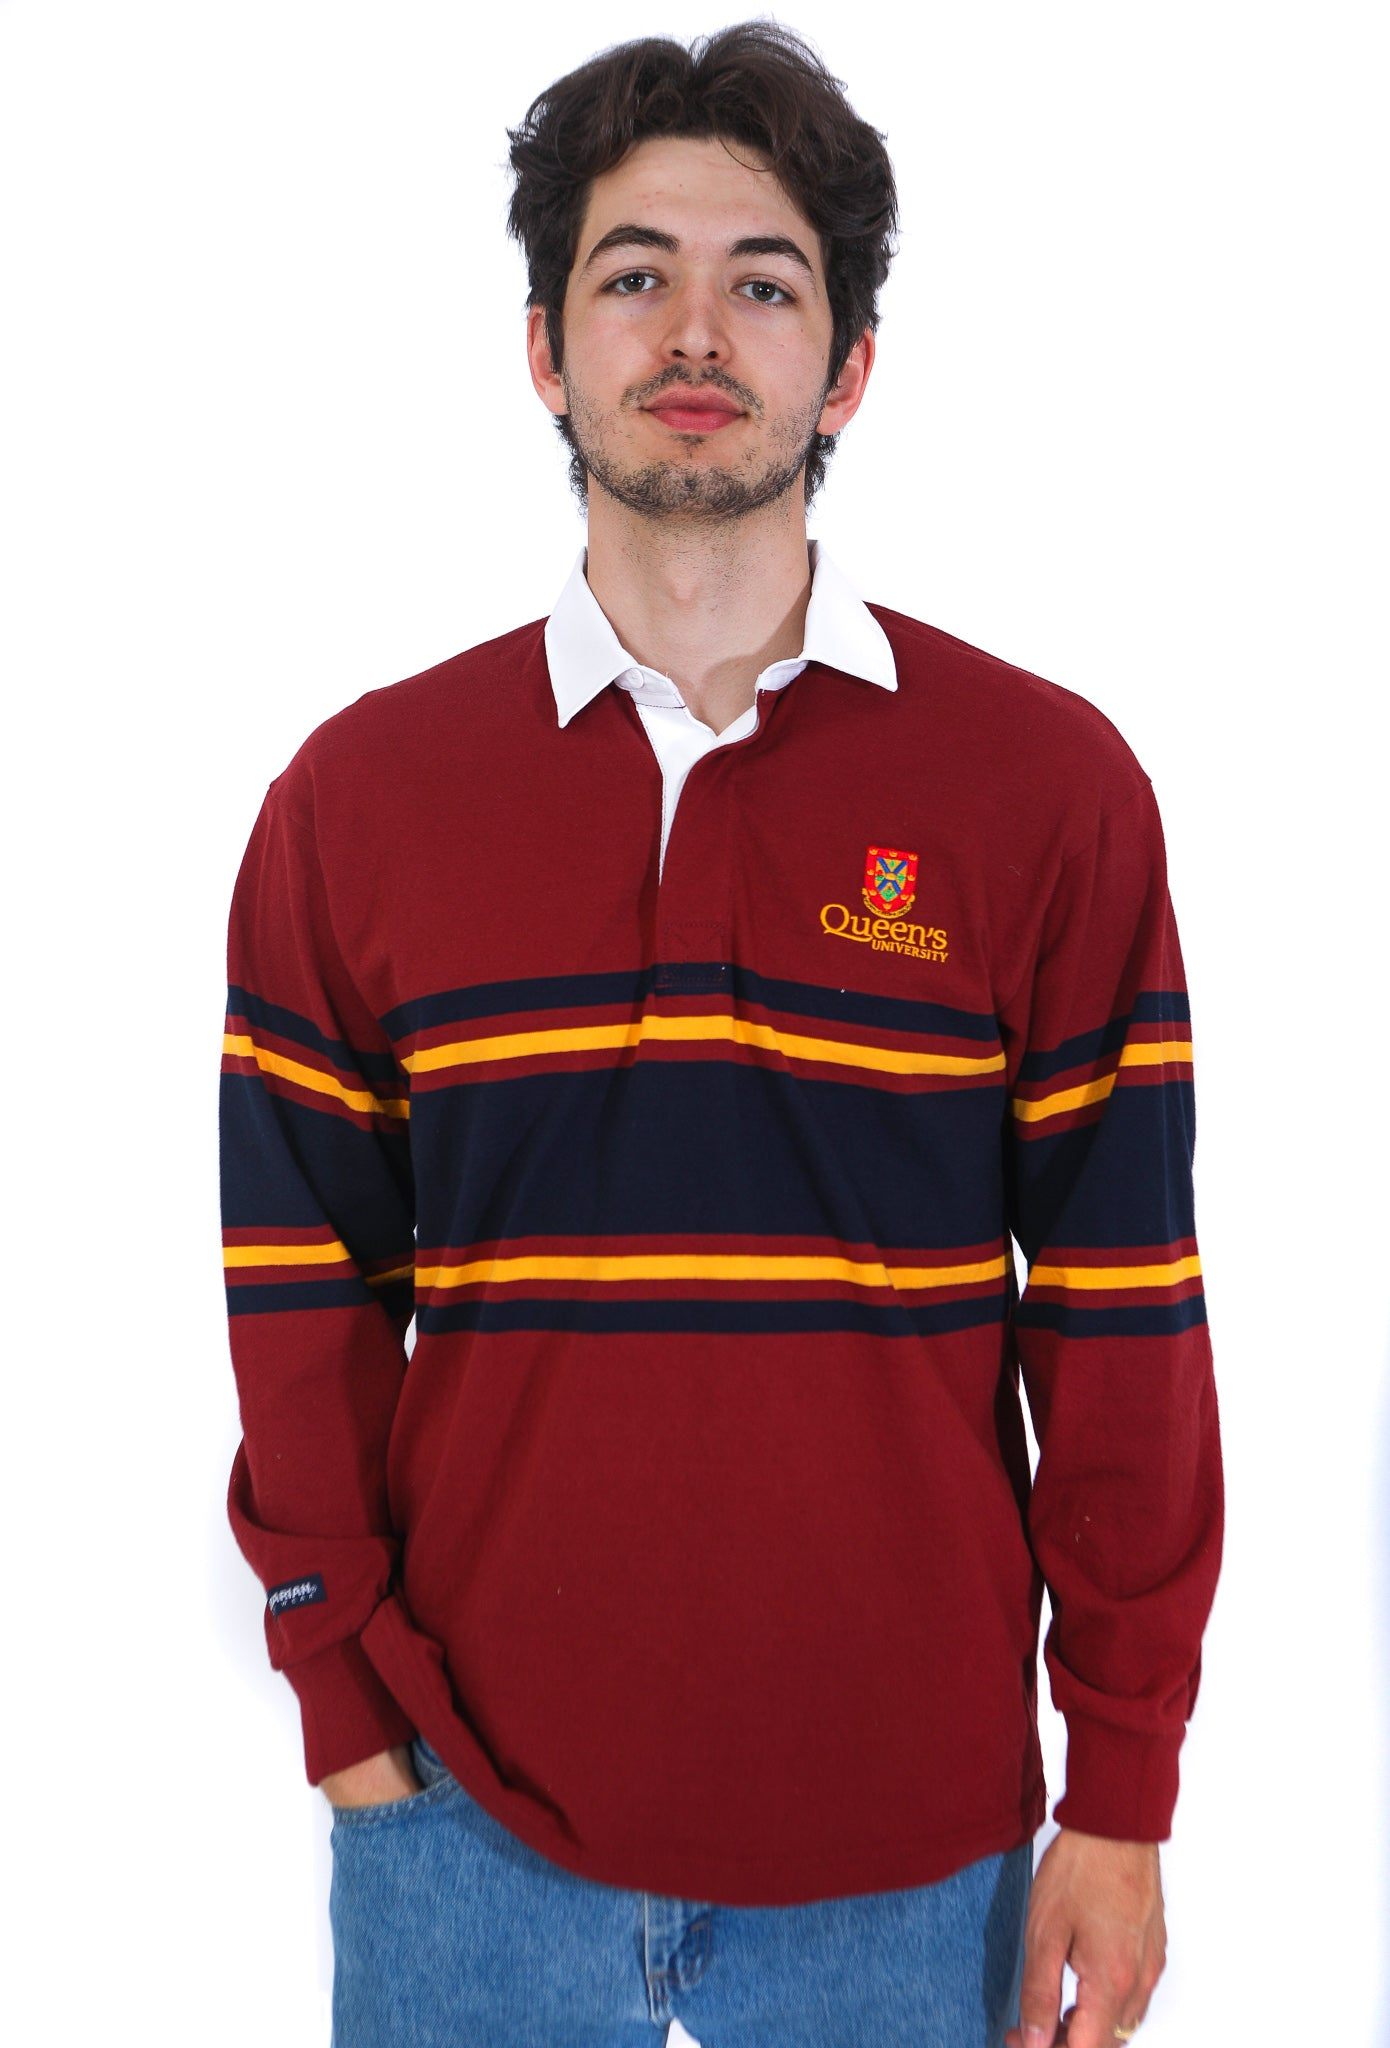 Model in burgundy rugby shirt with thin navy and yellow stripes and a thick navy stripe across chest